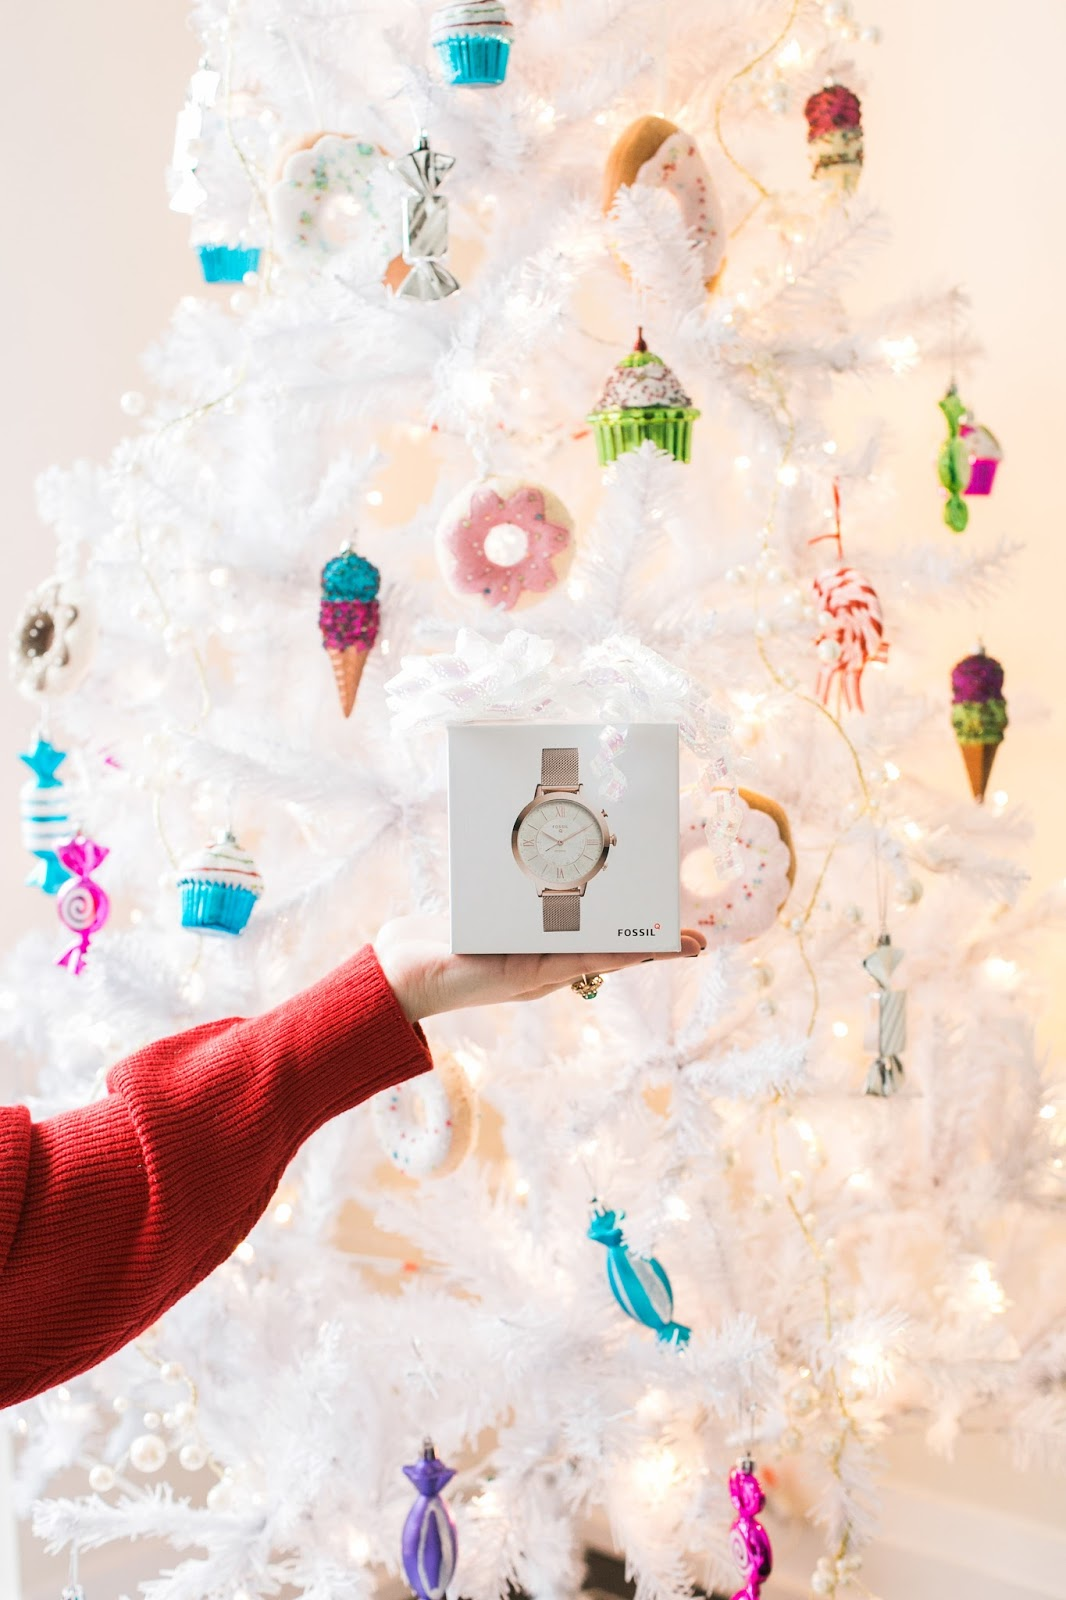 Bijuleni - Holiday Gift Guide For Her With Holt Renfrew Centre - Fossil Watch